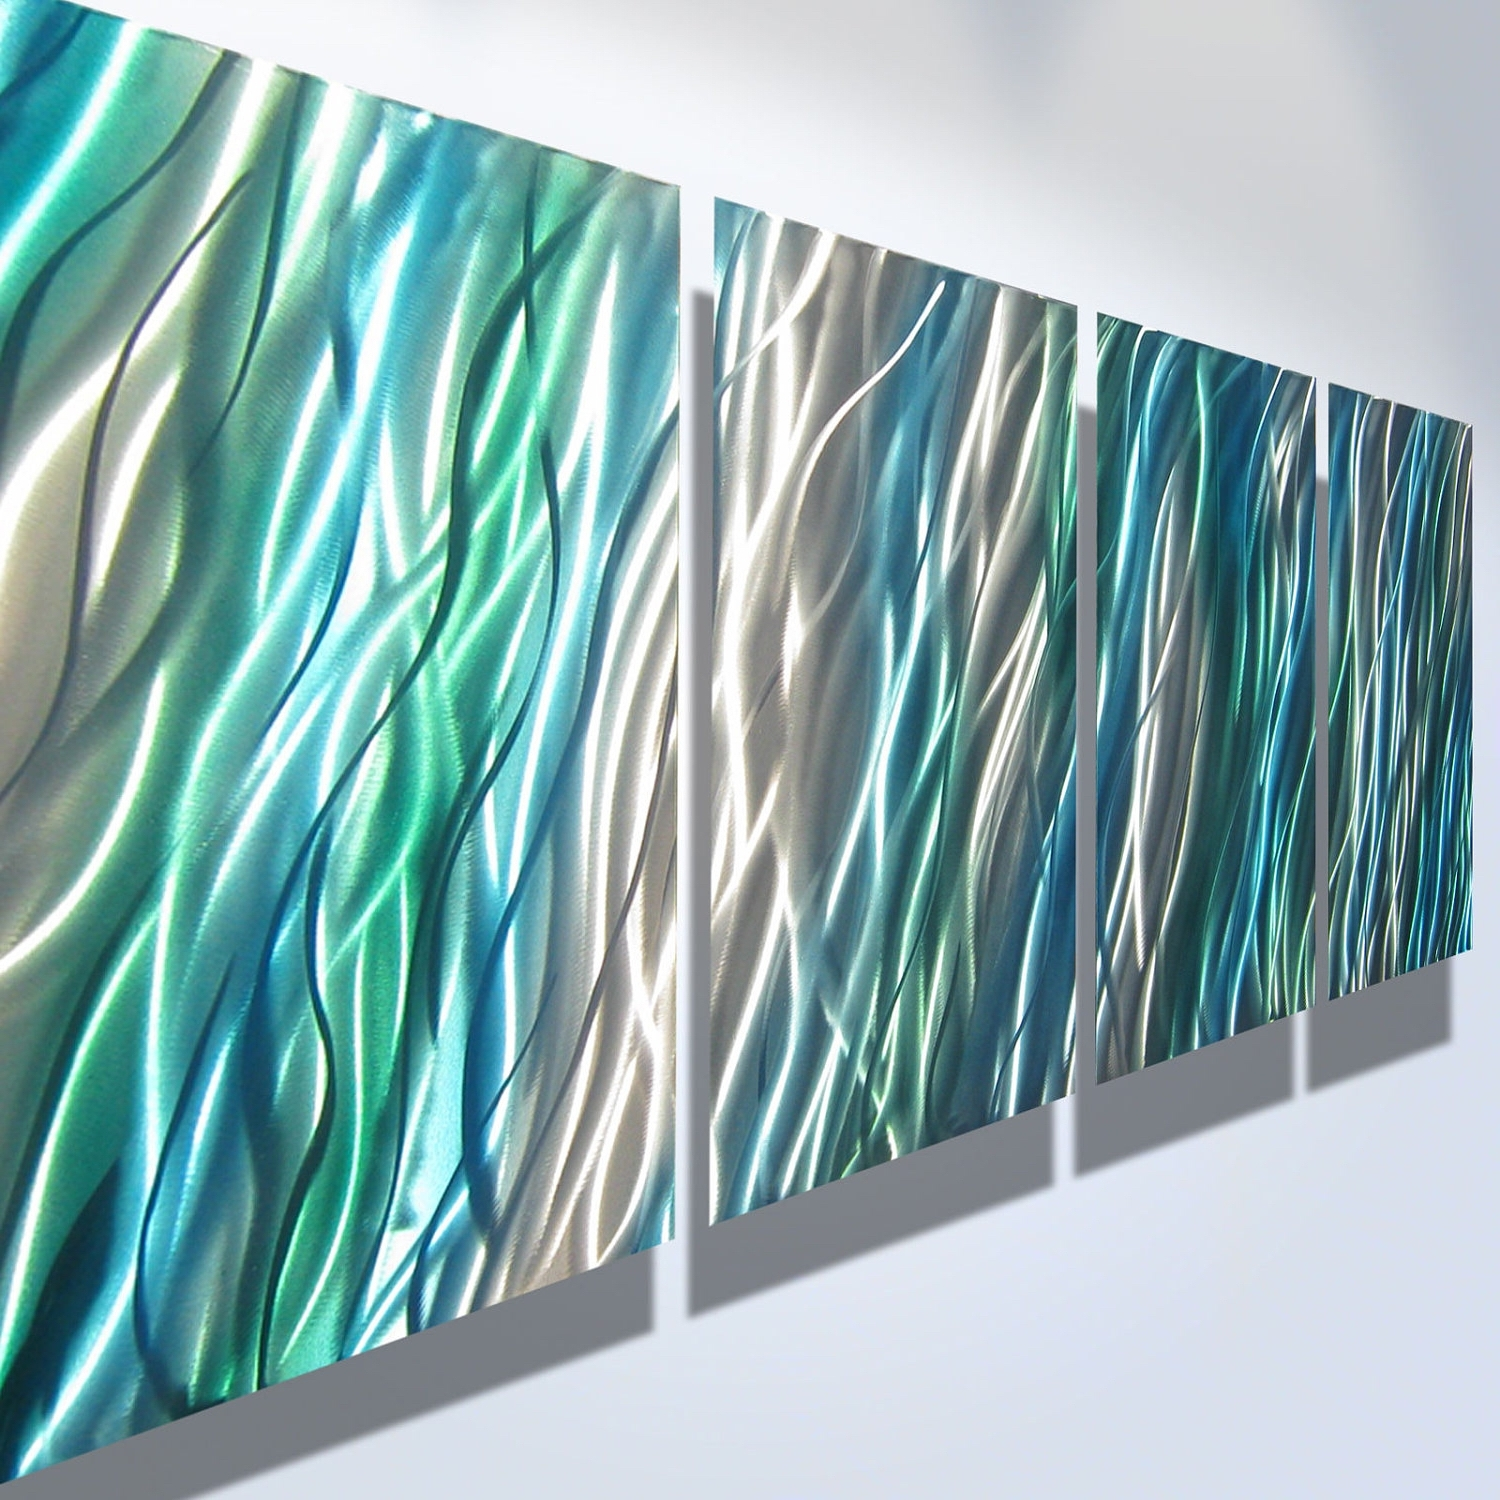 Turquoise Metal Wall Art In Most Popular Metal Wall Art Decor Abstract Contemporary Modern Sculpture (View 2 of 15)